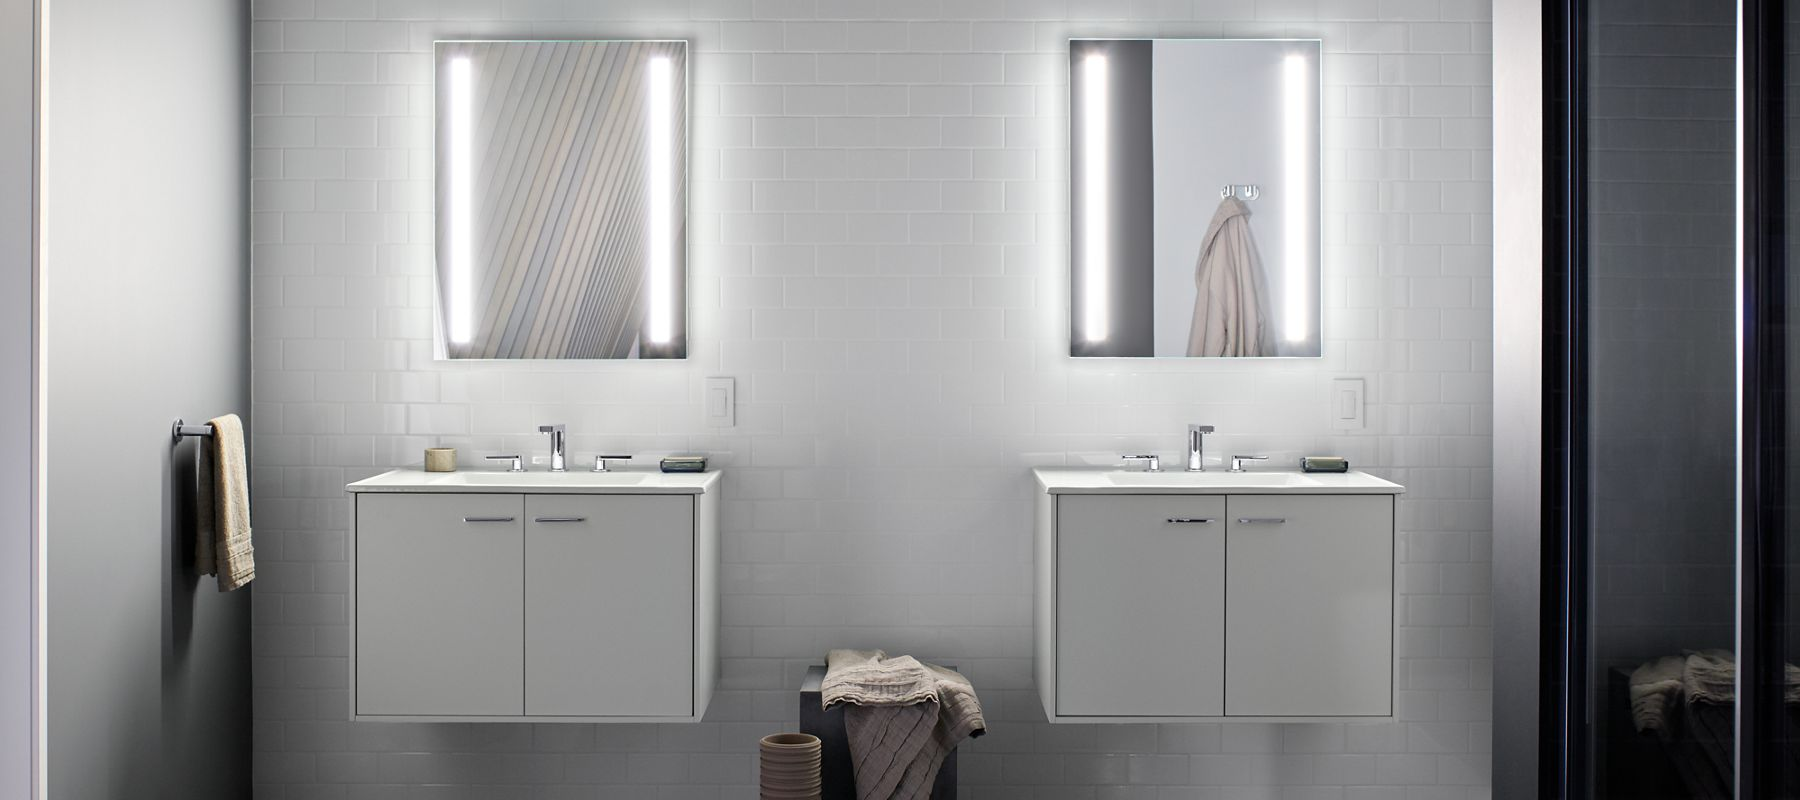 white bathroom mirror with shelf. better light. white bathroom mirror with shelf o